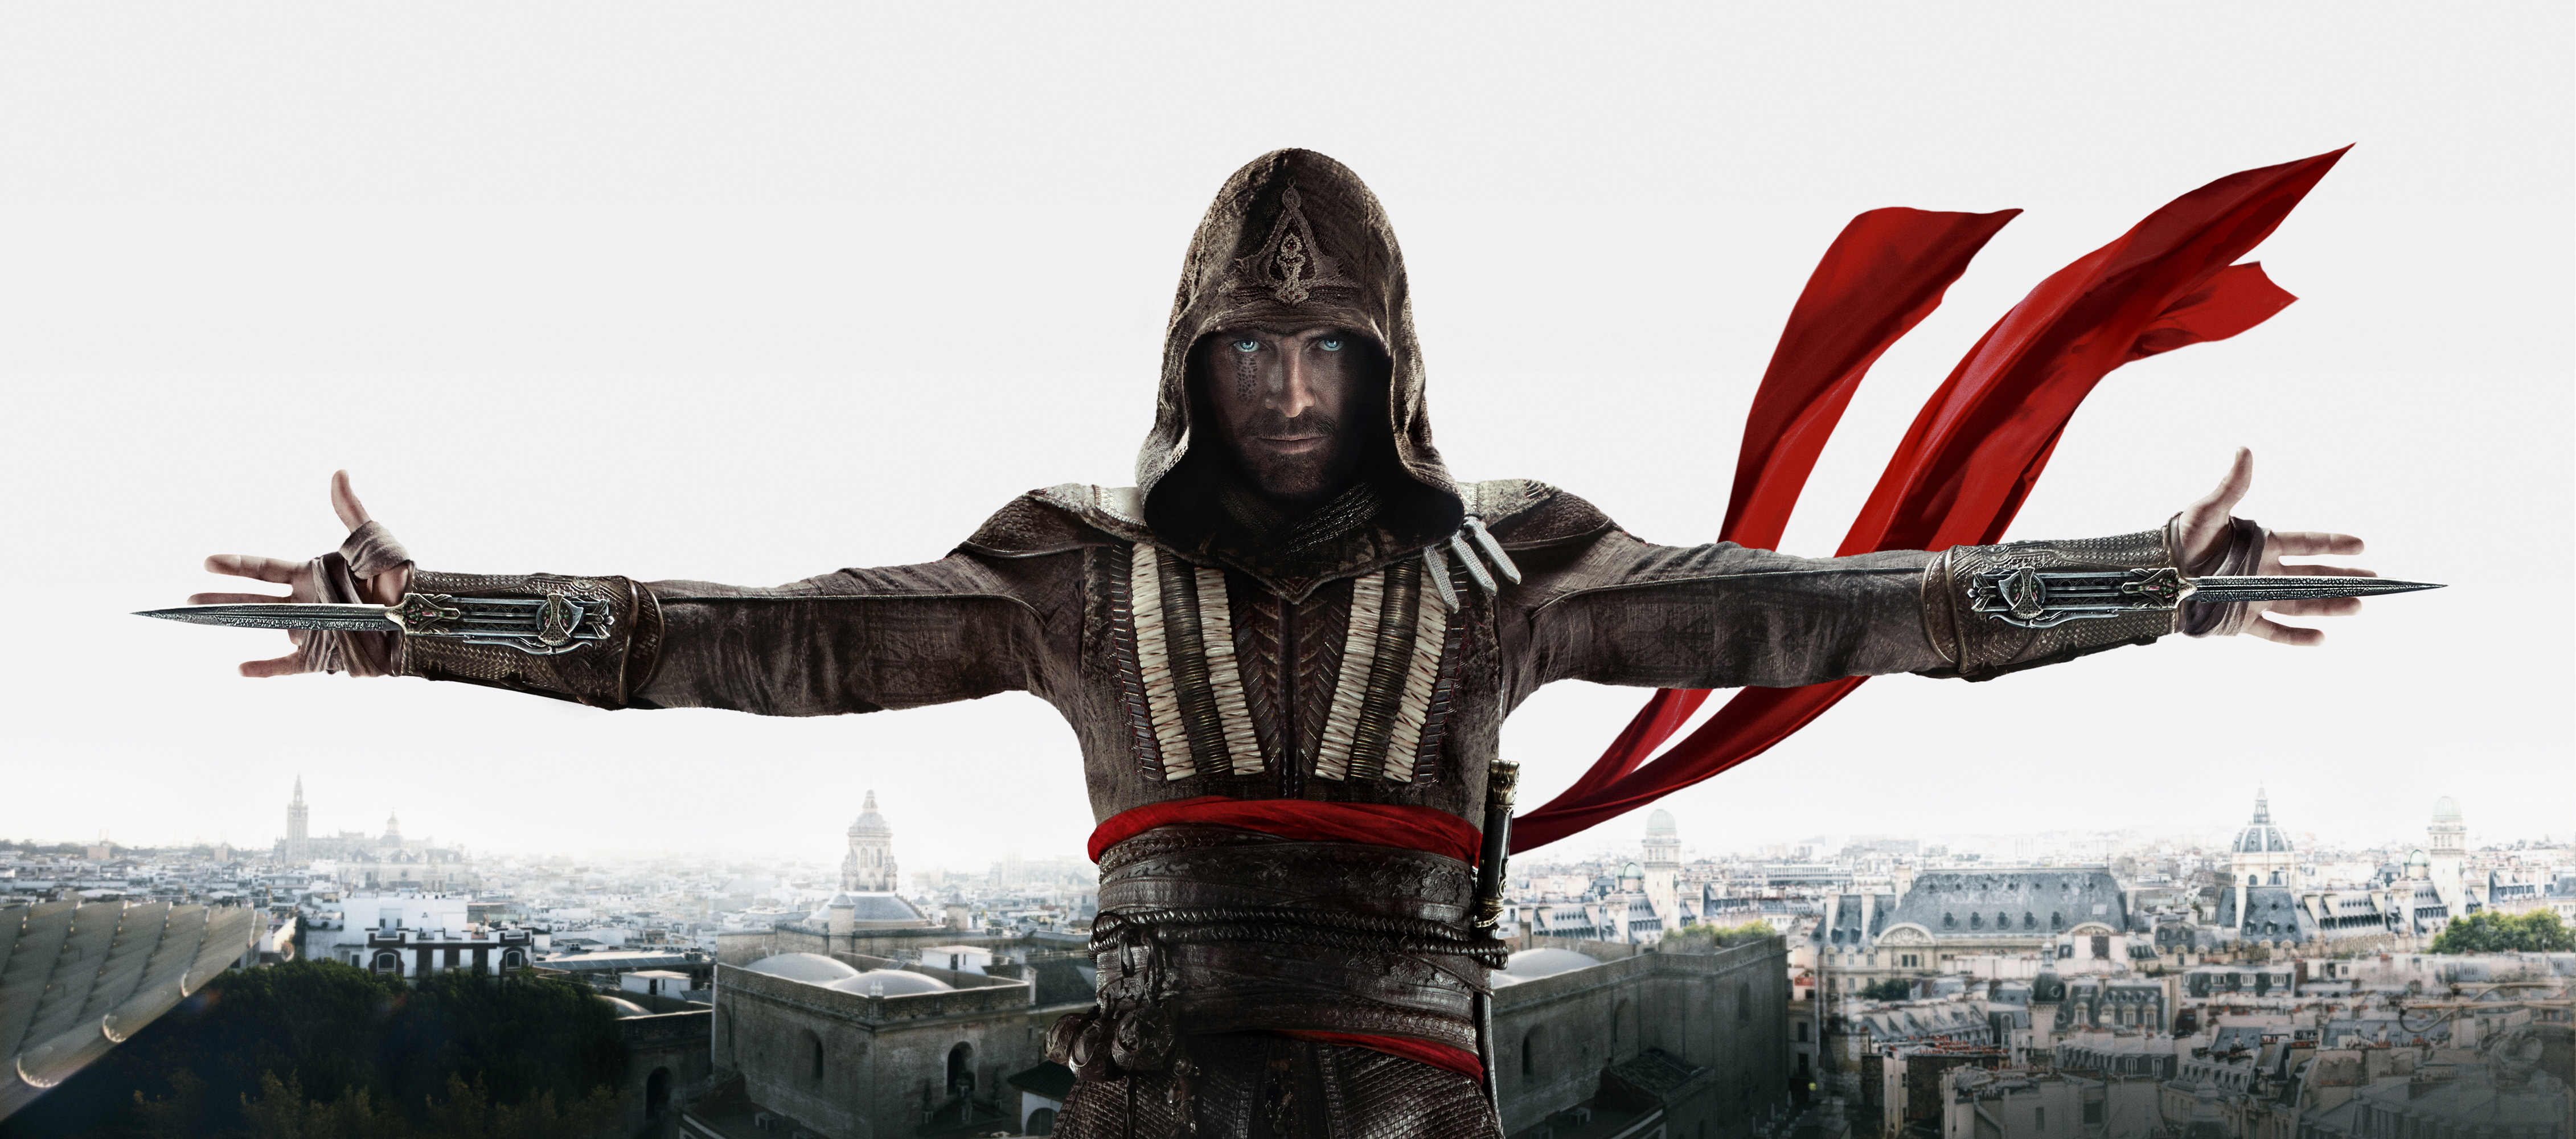 assassins creed movie 4k hd movies 4k wallpapers images